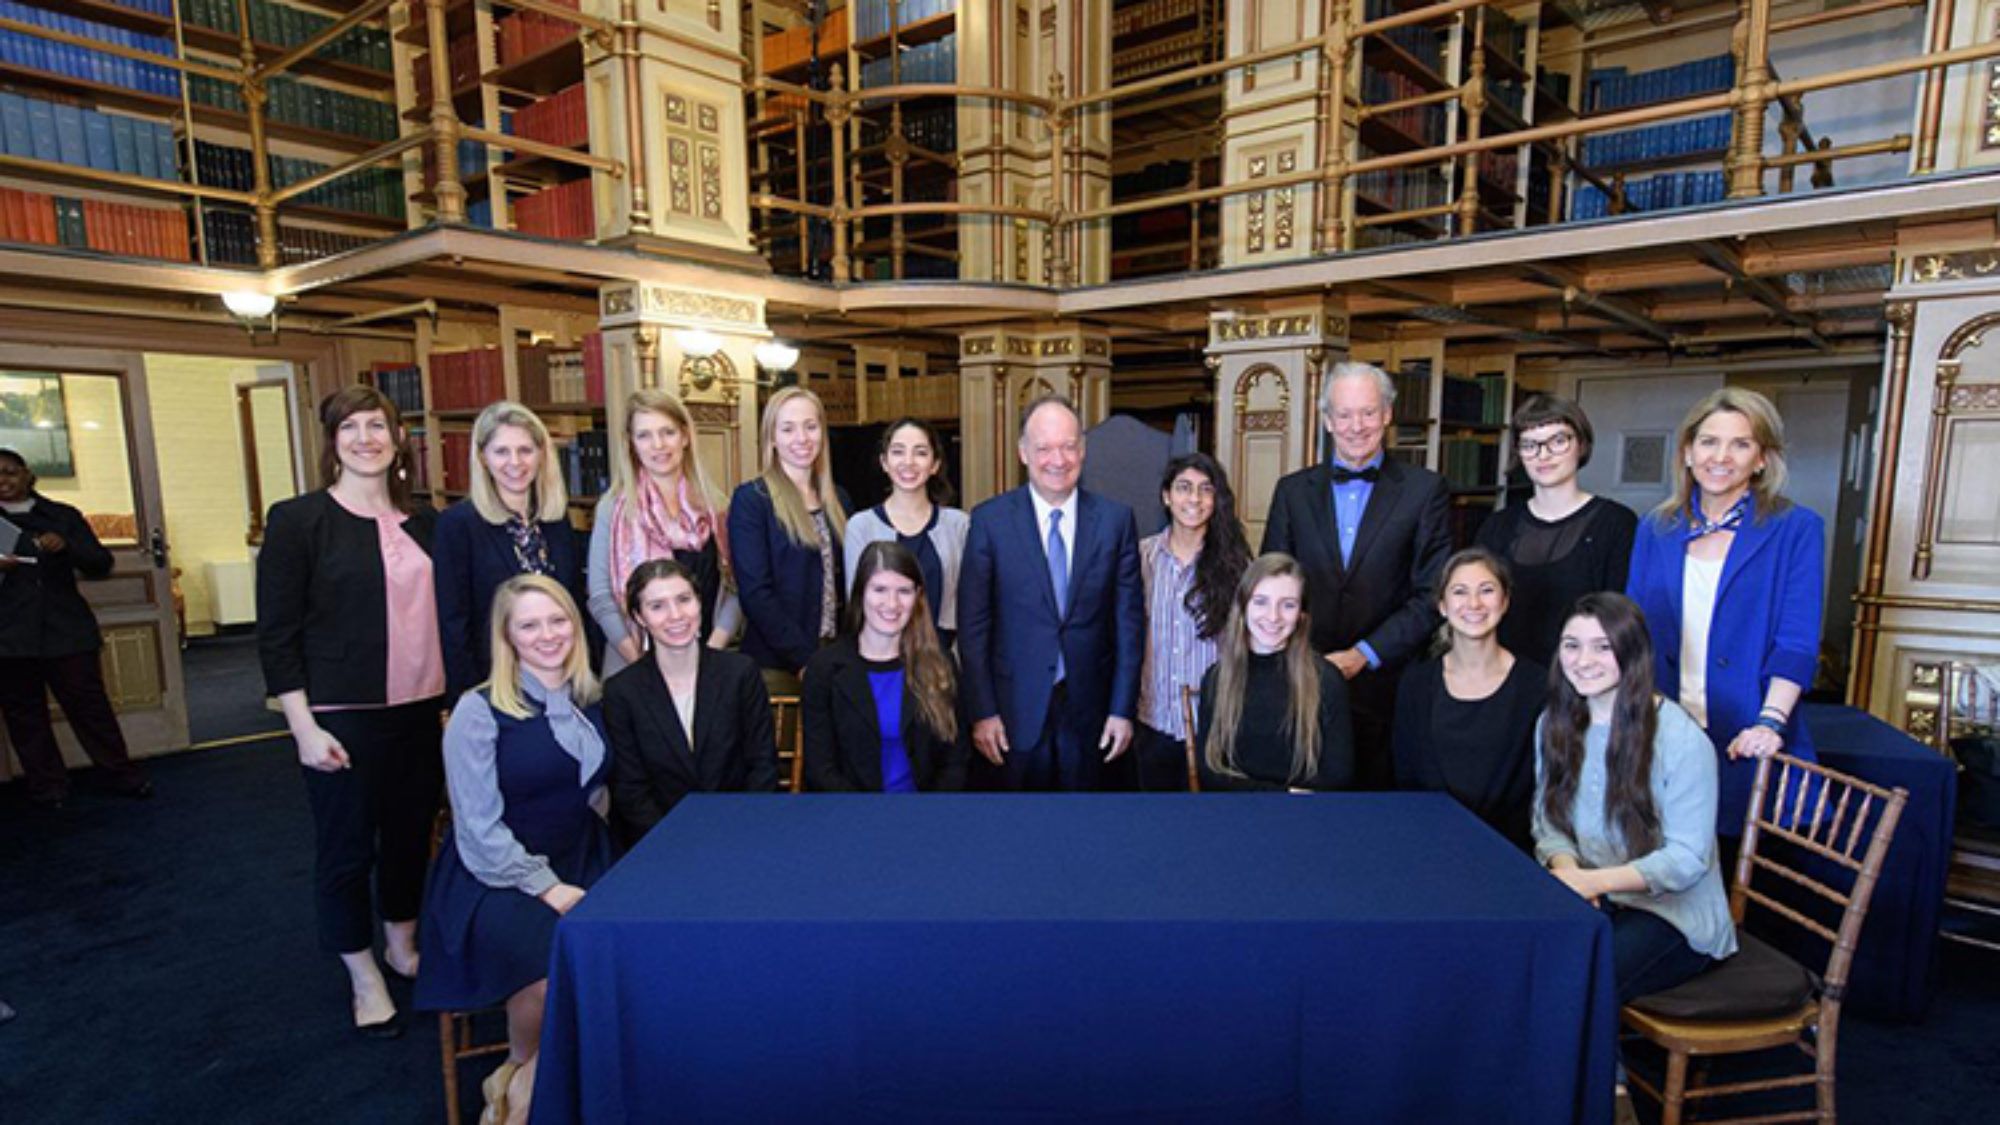 Bill McDonough and John J. DeGioia stand around a table with students and administrators